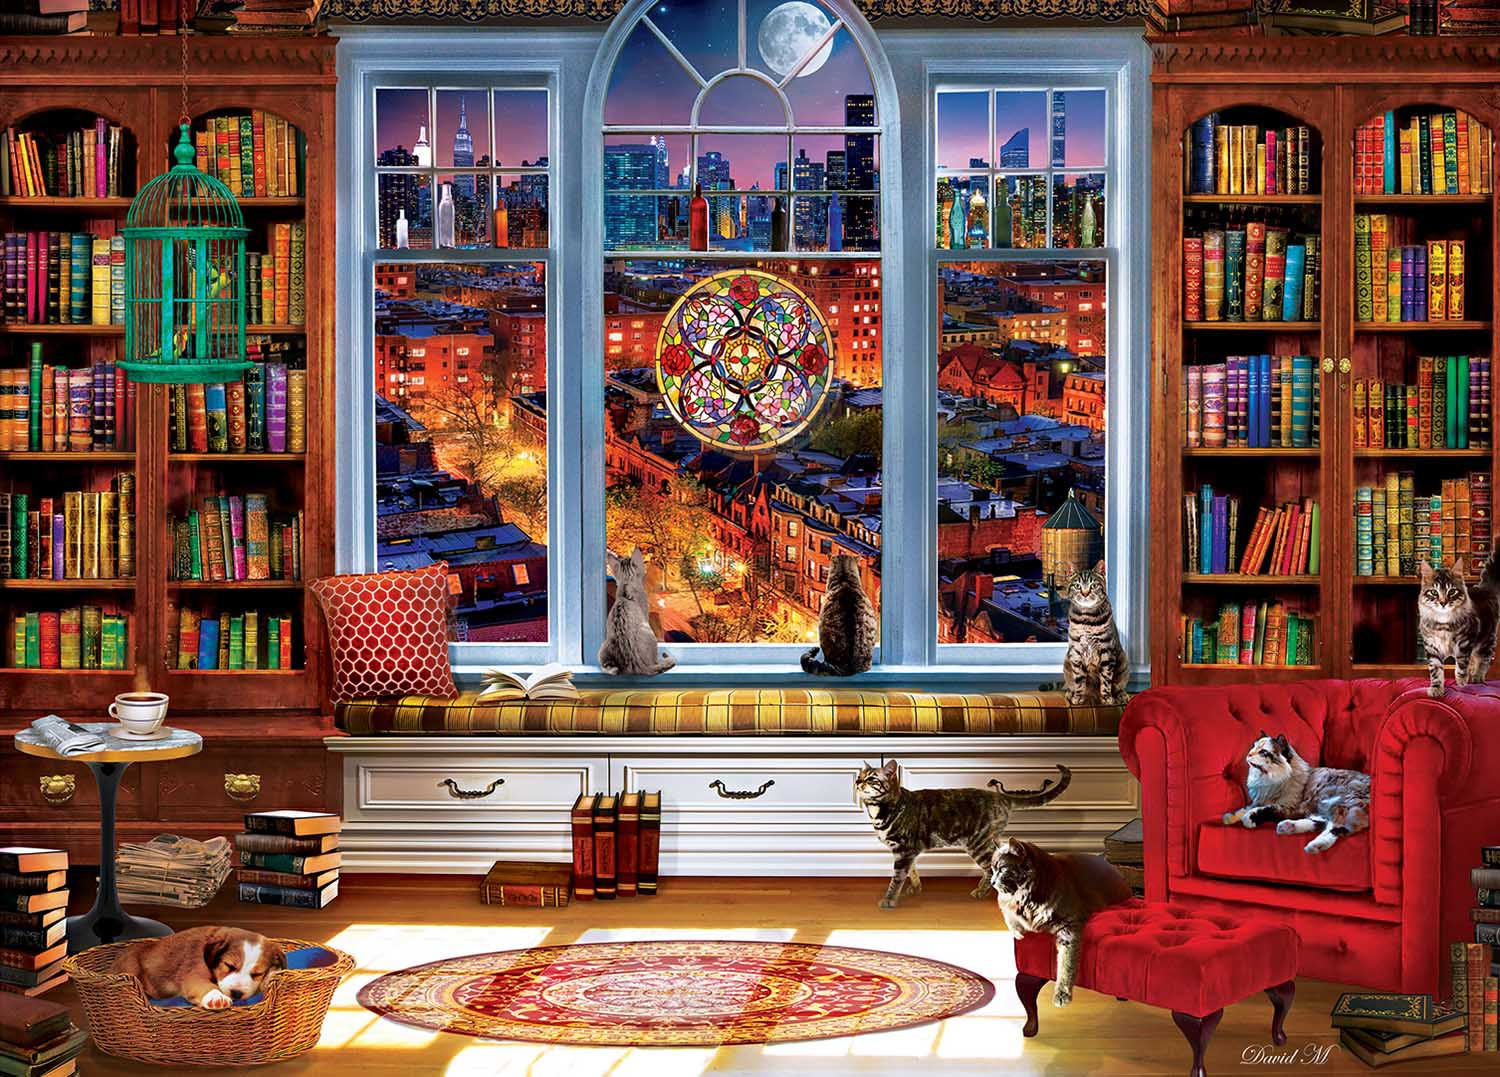 Downtown City View Street Scene Jigsaw Puzzle